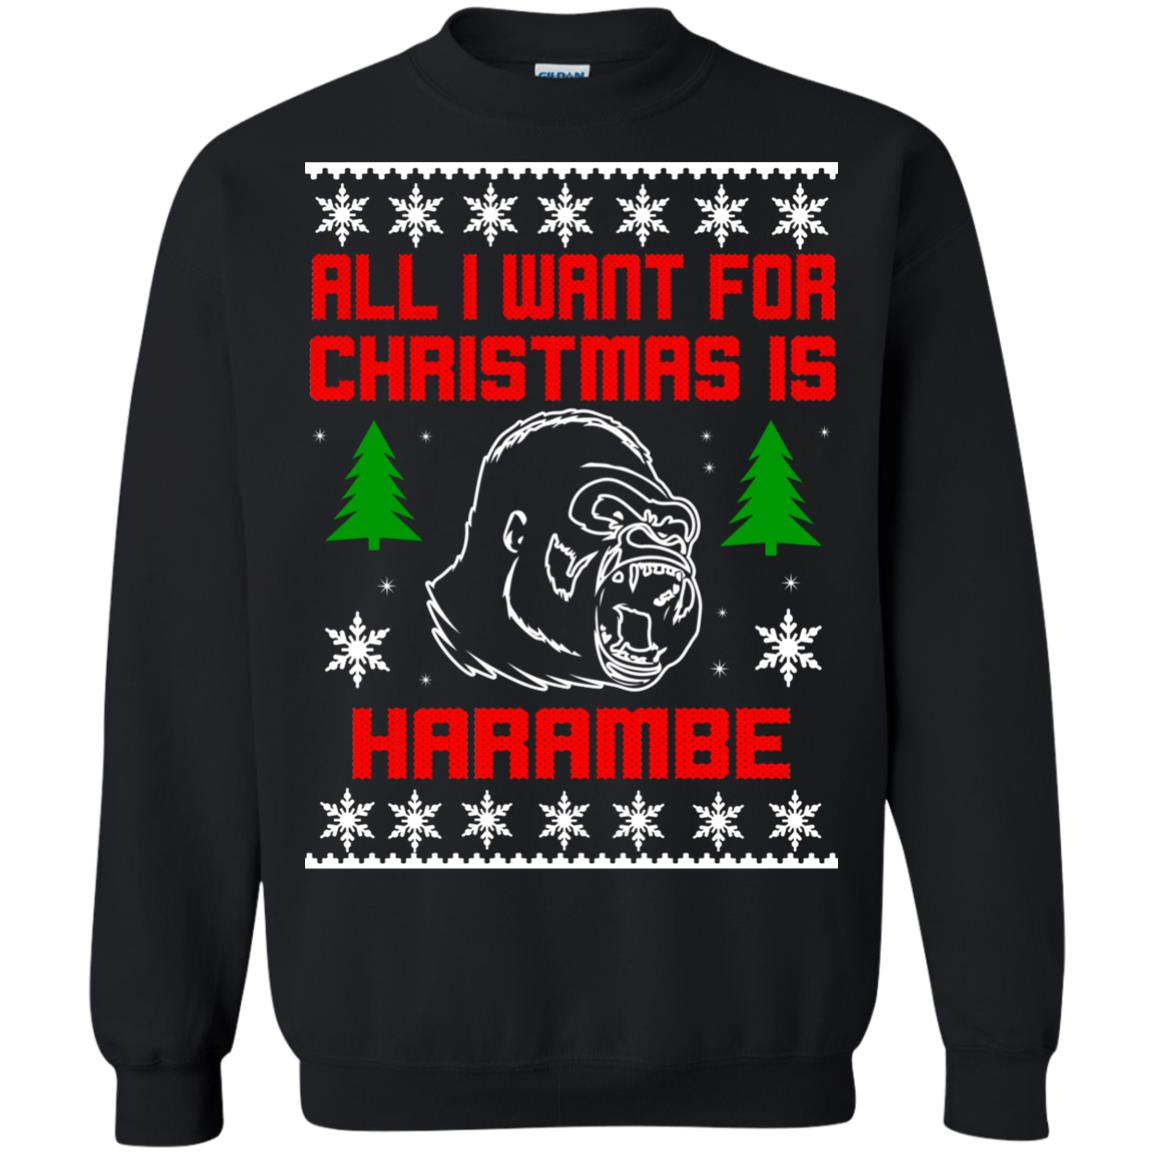 image 3273 - All I Want For Christmas Is Harambe Ugly Sweater, Hoodie